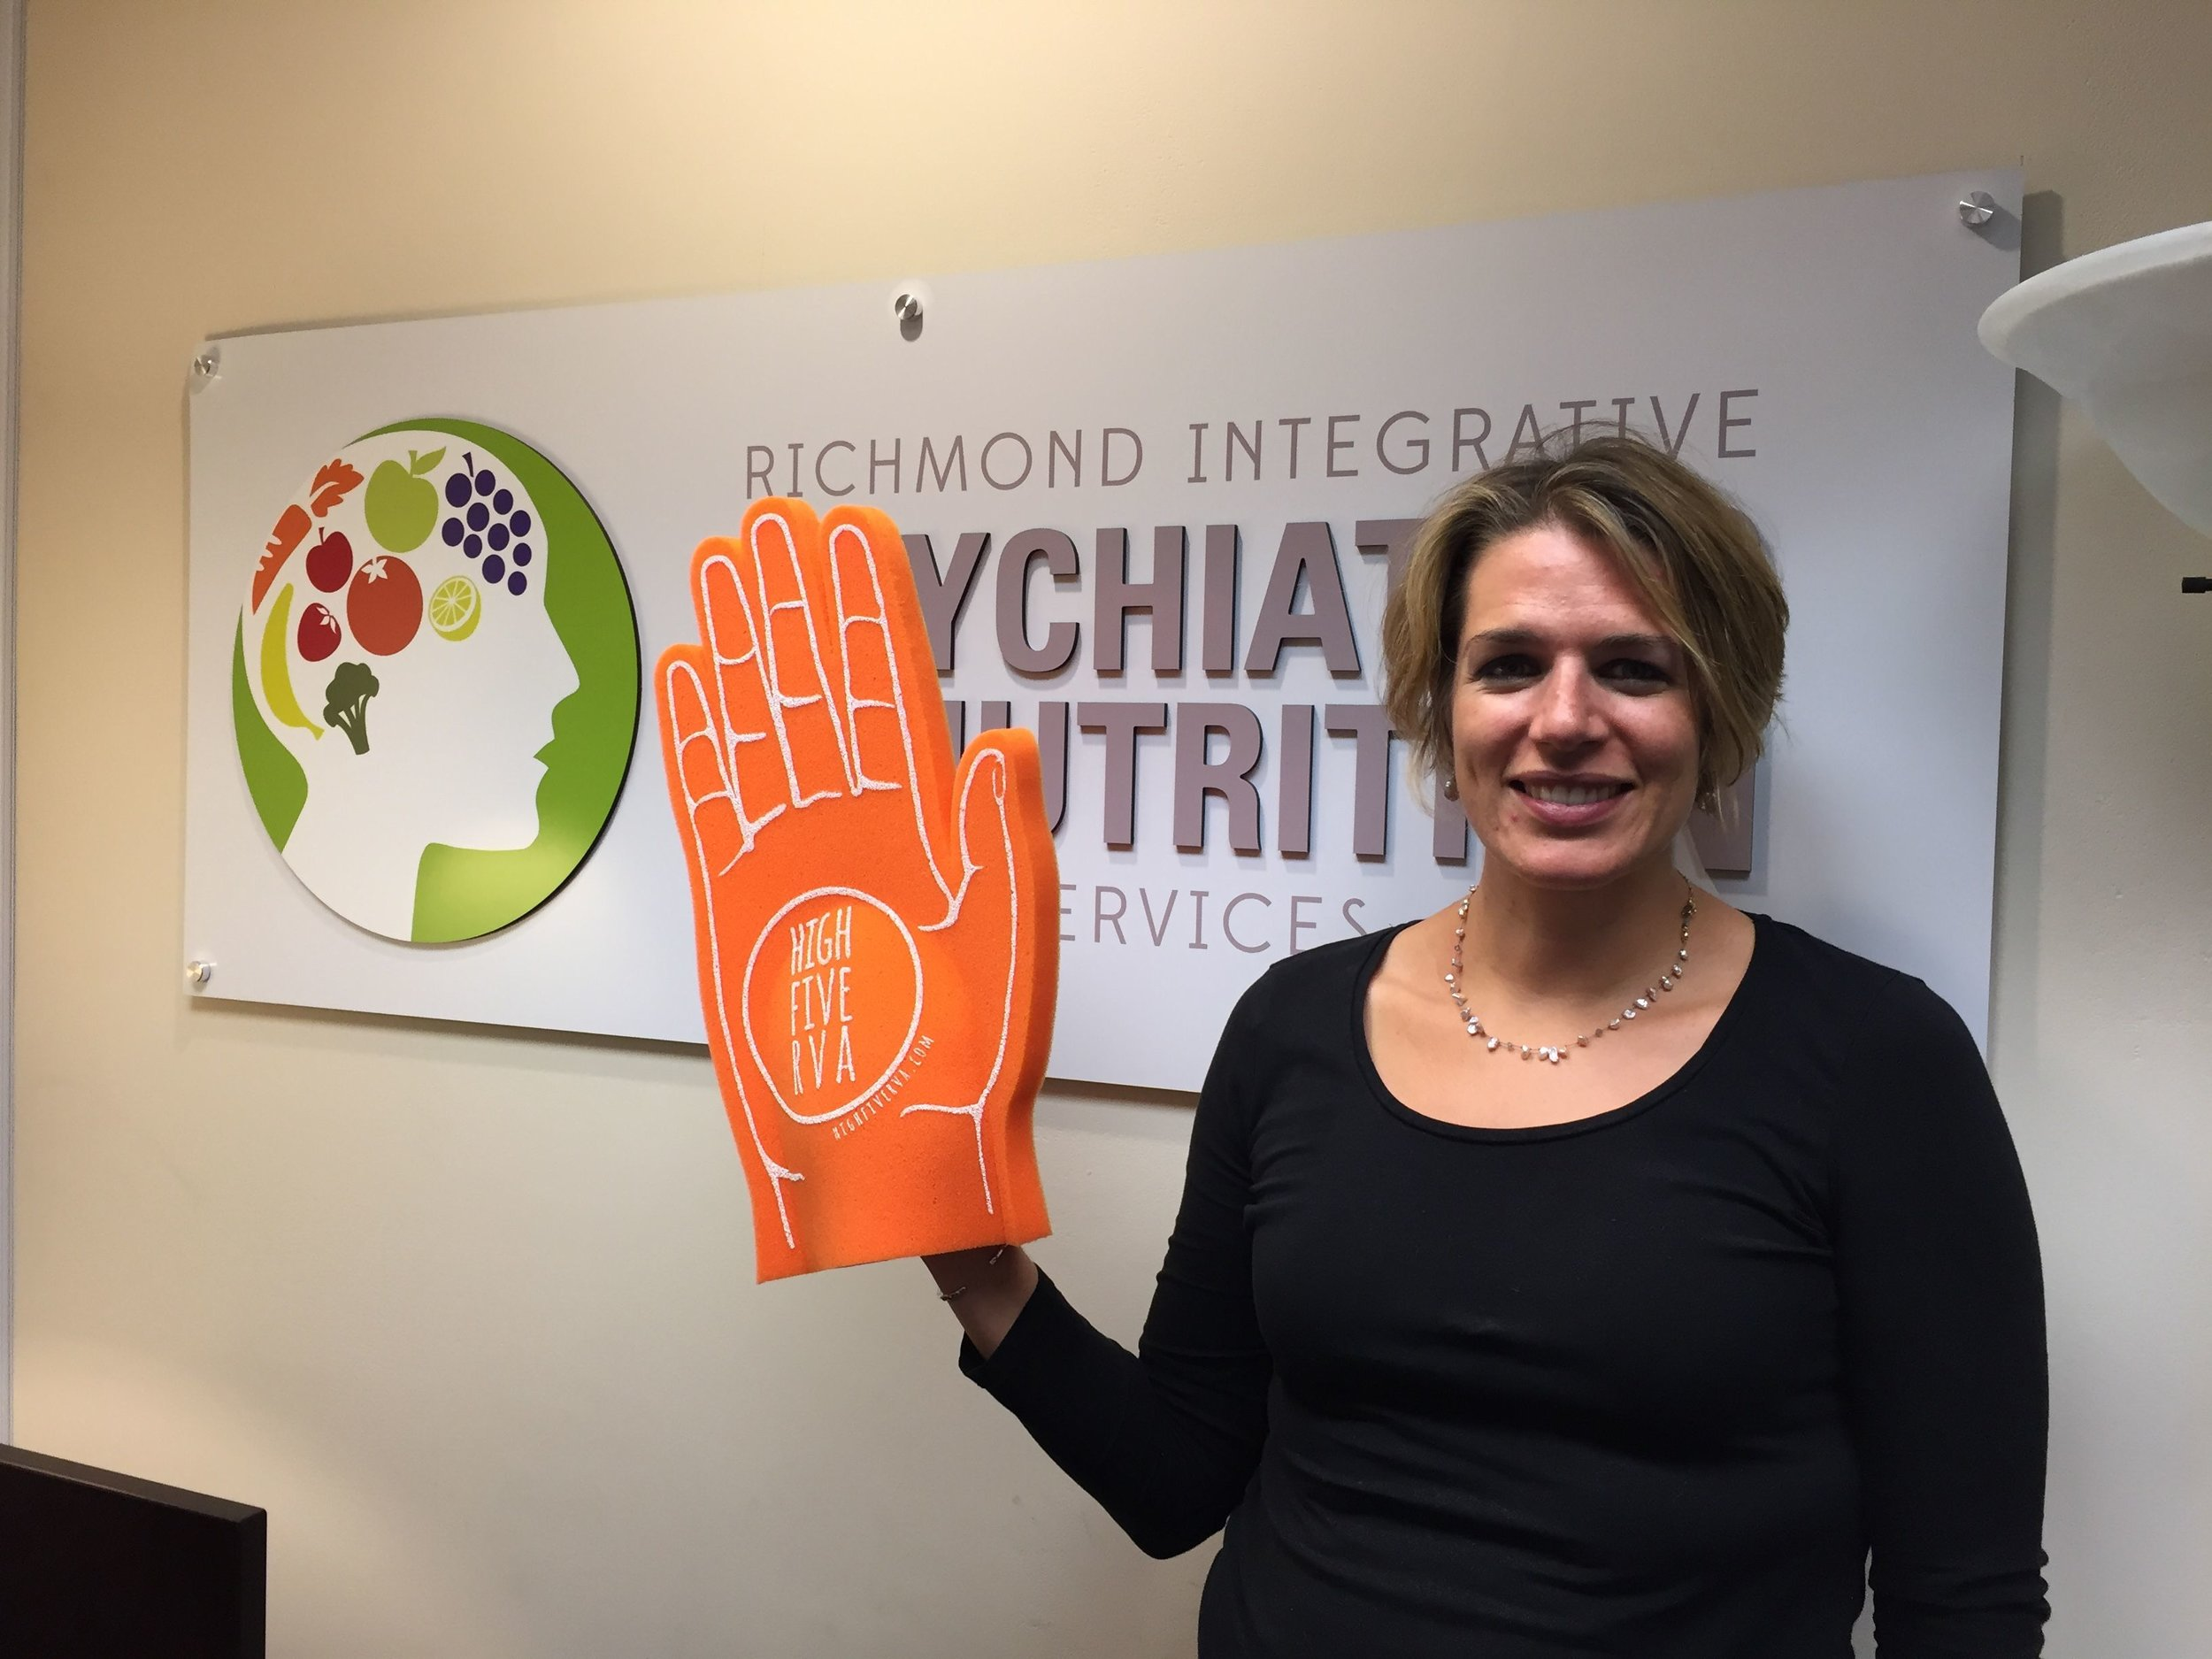 Ashley Mannell, Founder of Richmond Integrative Psychiatric and Nutrition Services